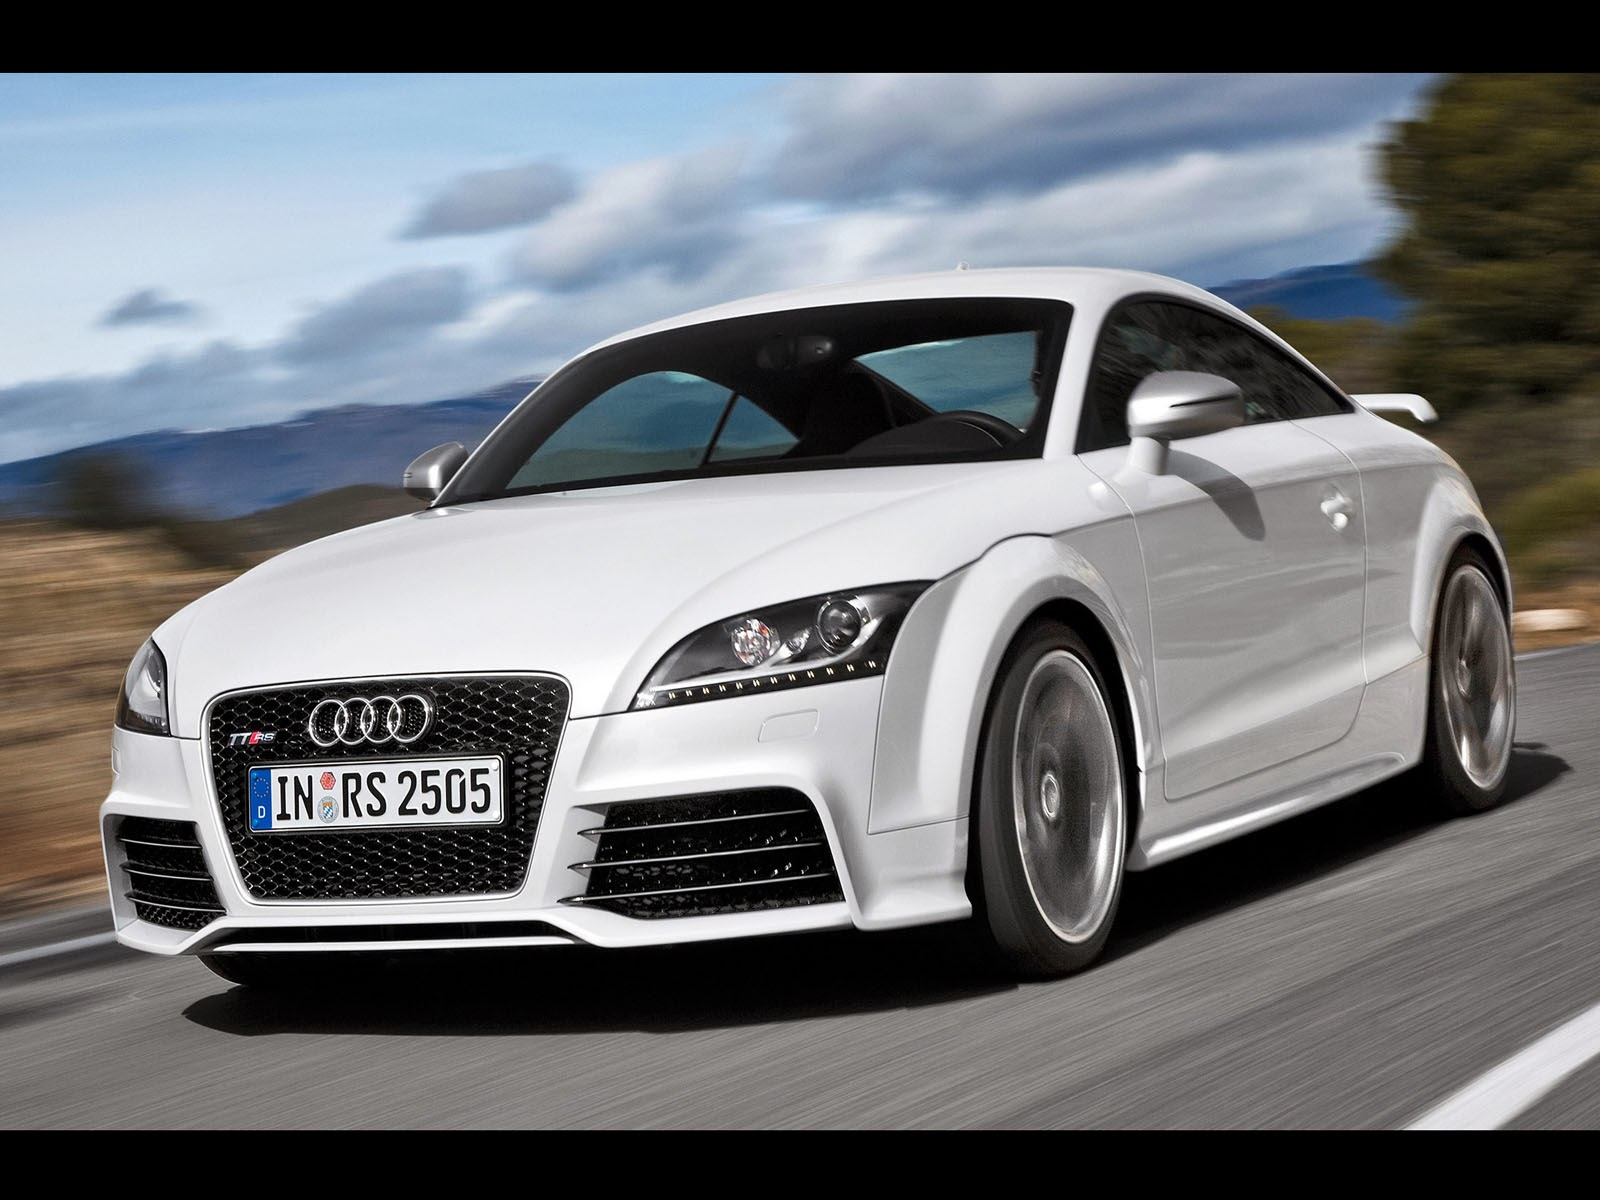 Wallpapers: Audi TT RS Wallpapers